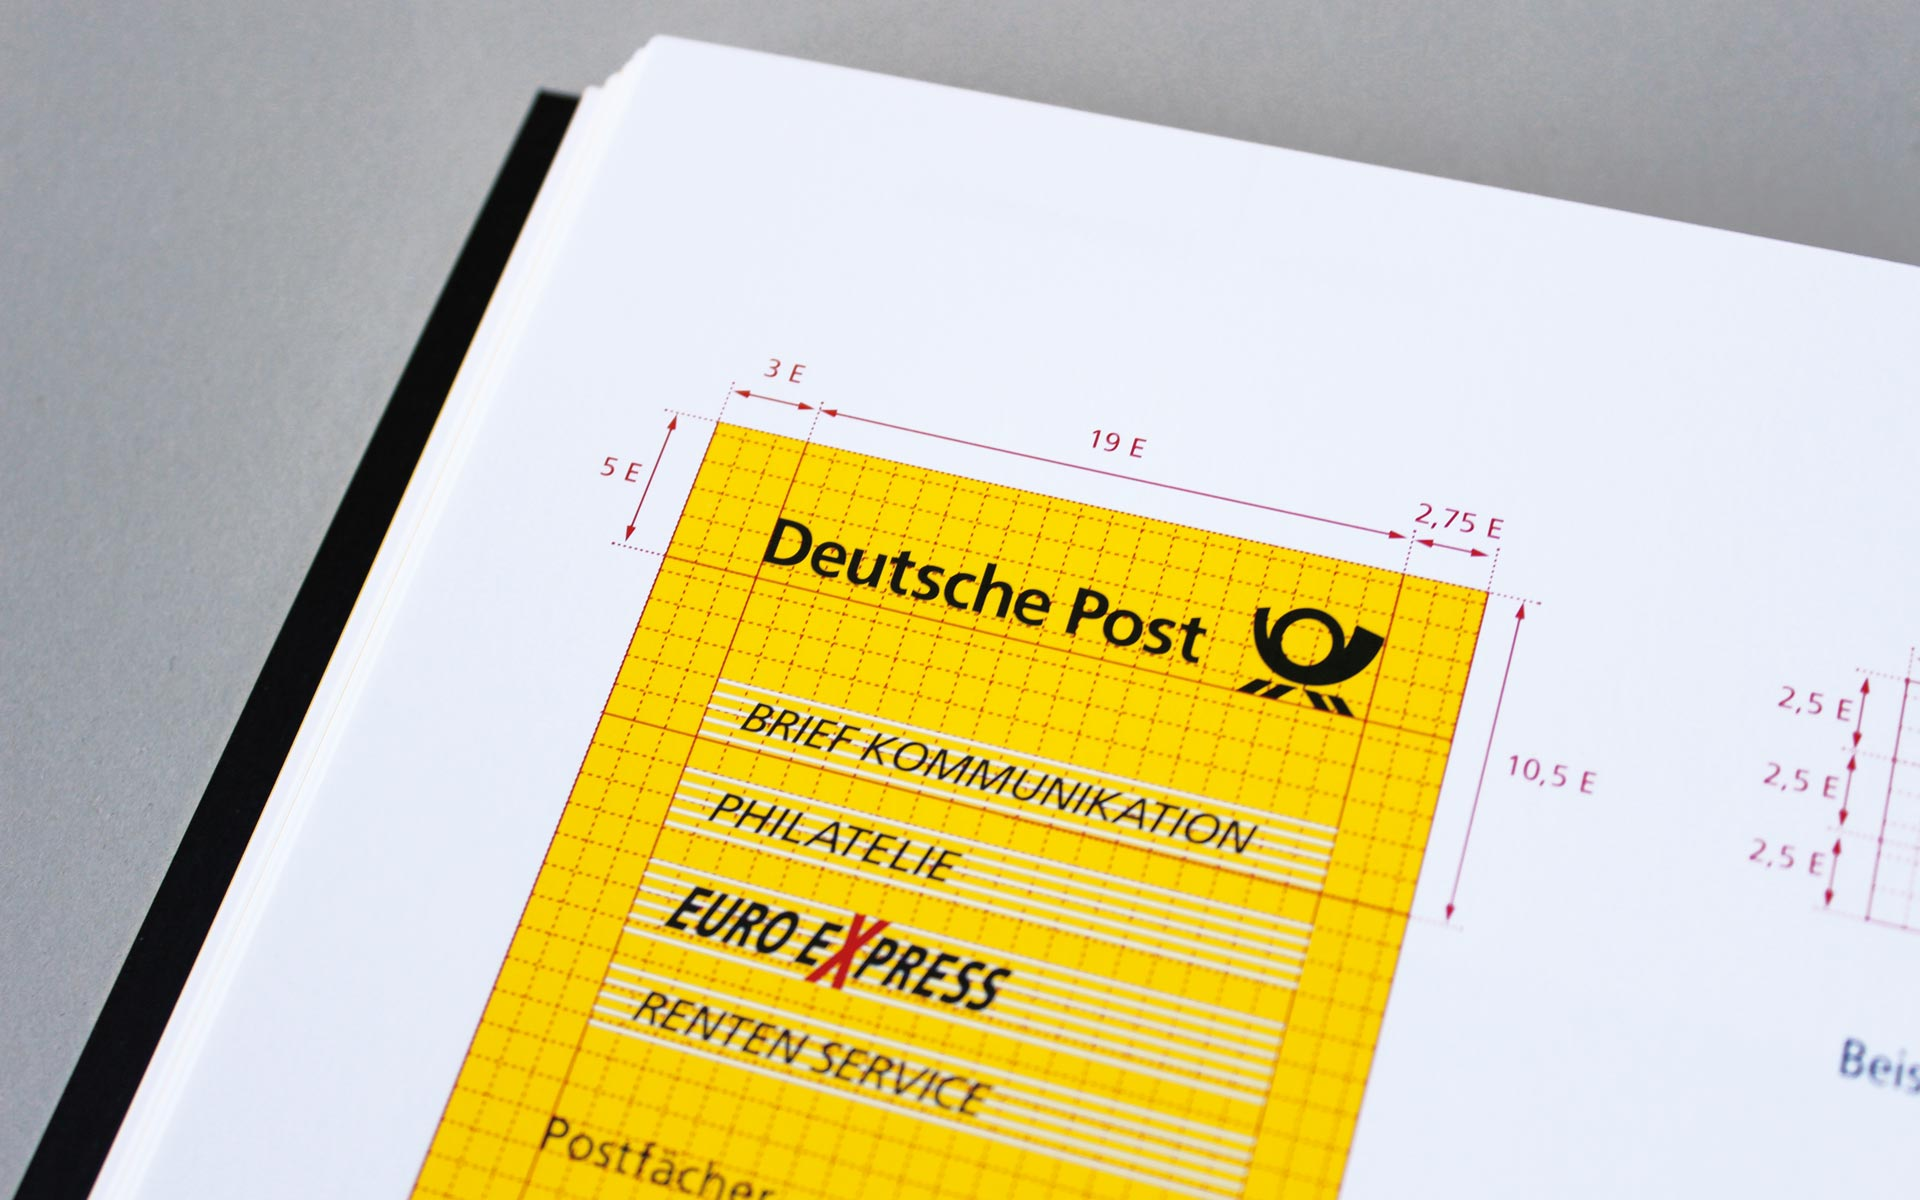 Deutsche Post AG / DHL Corporate Design, Vermassung der Pylone